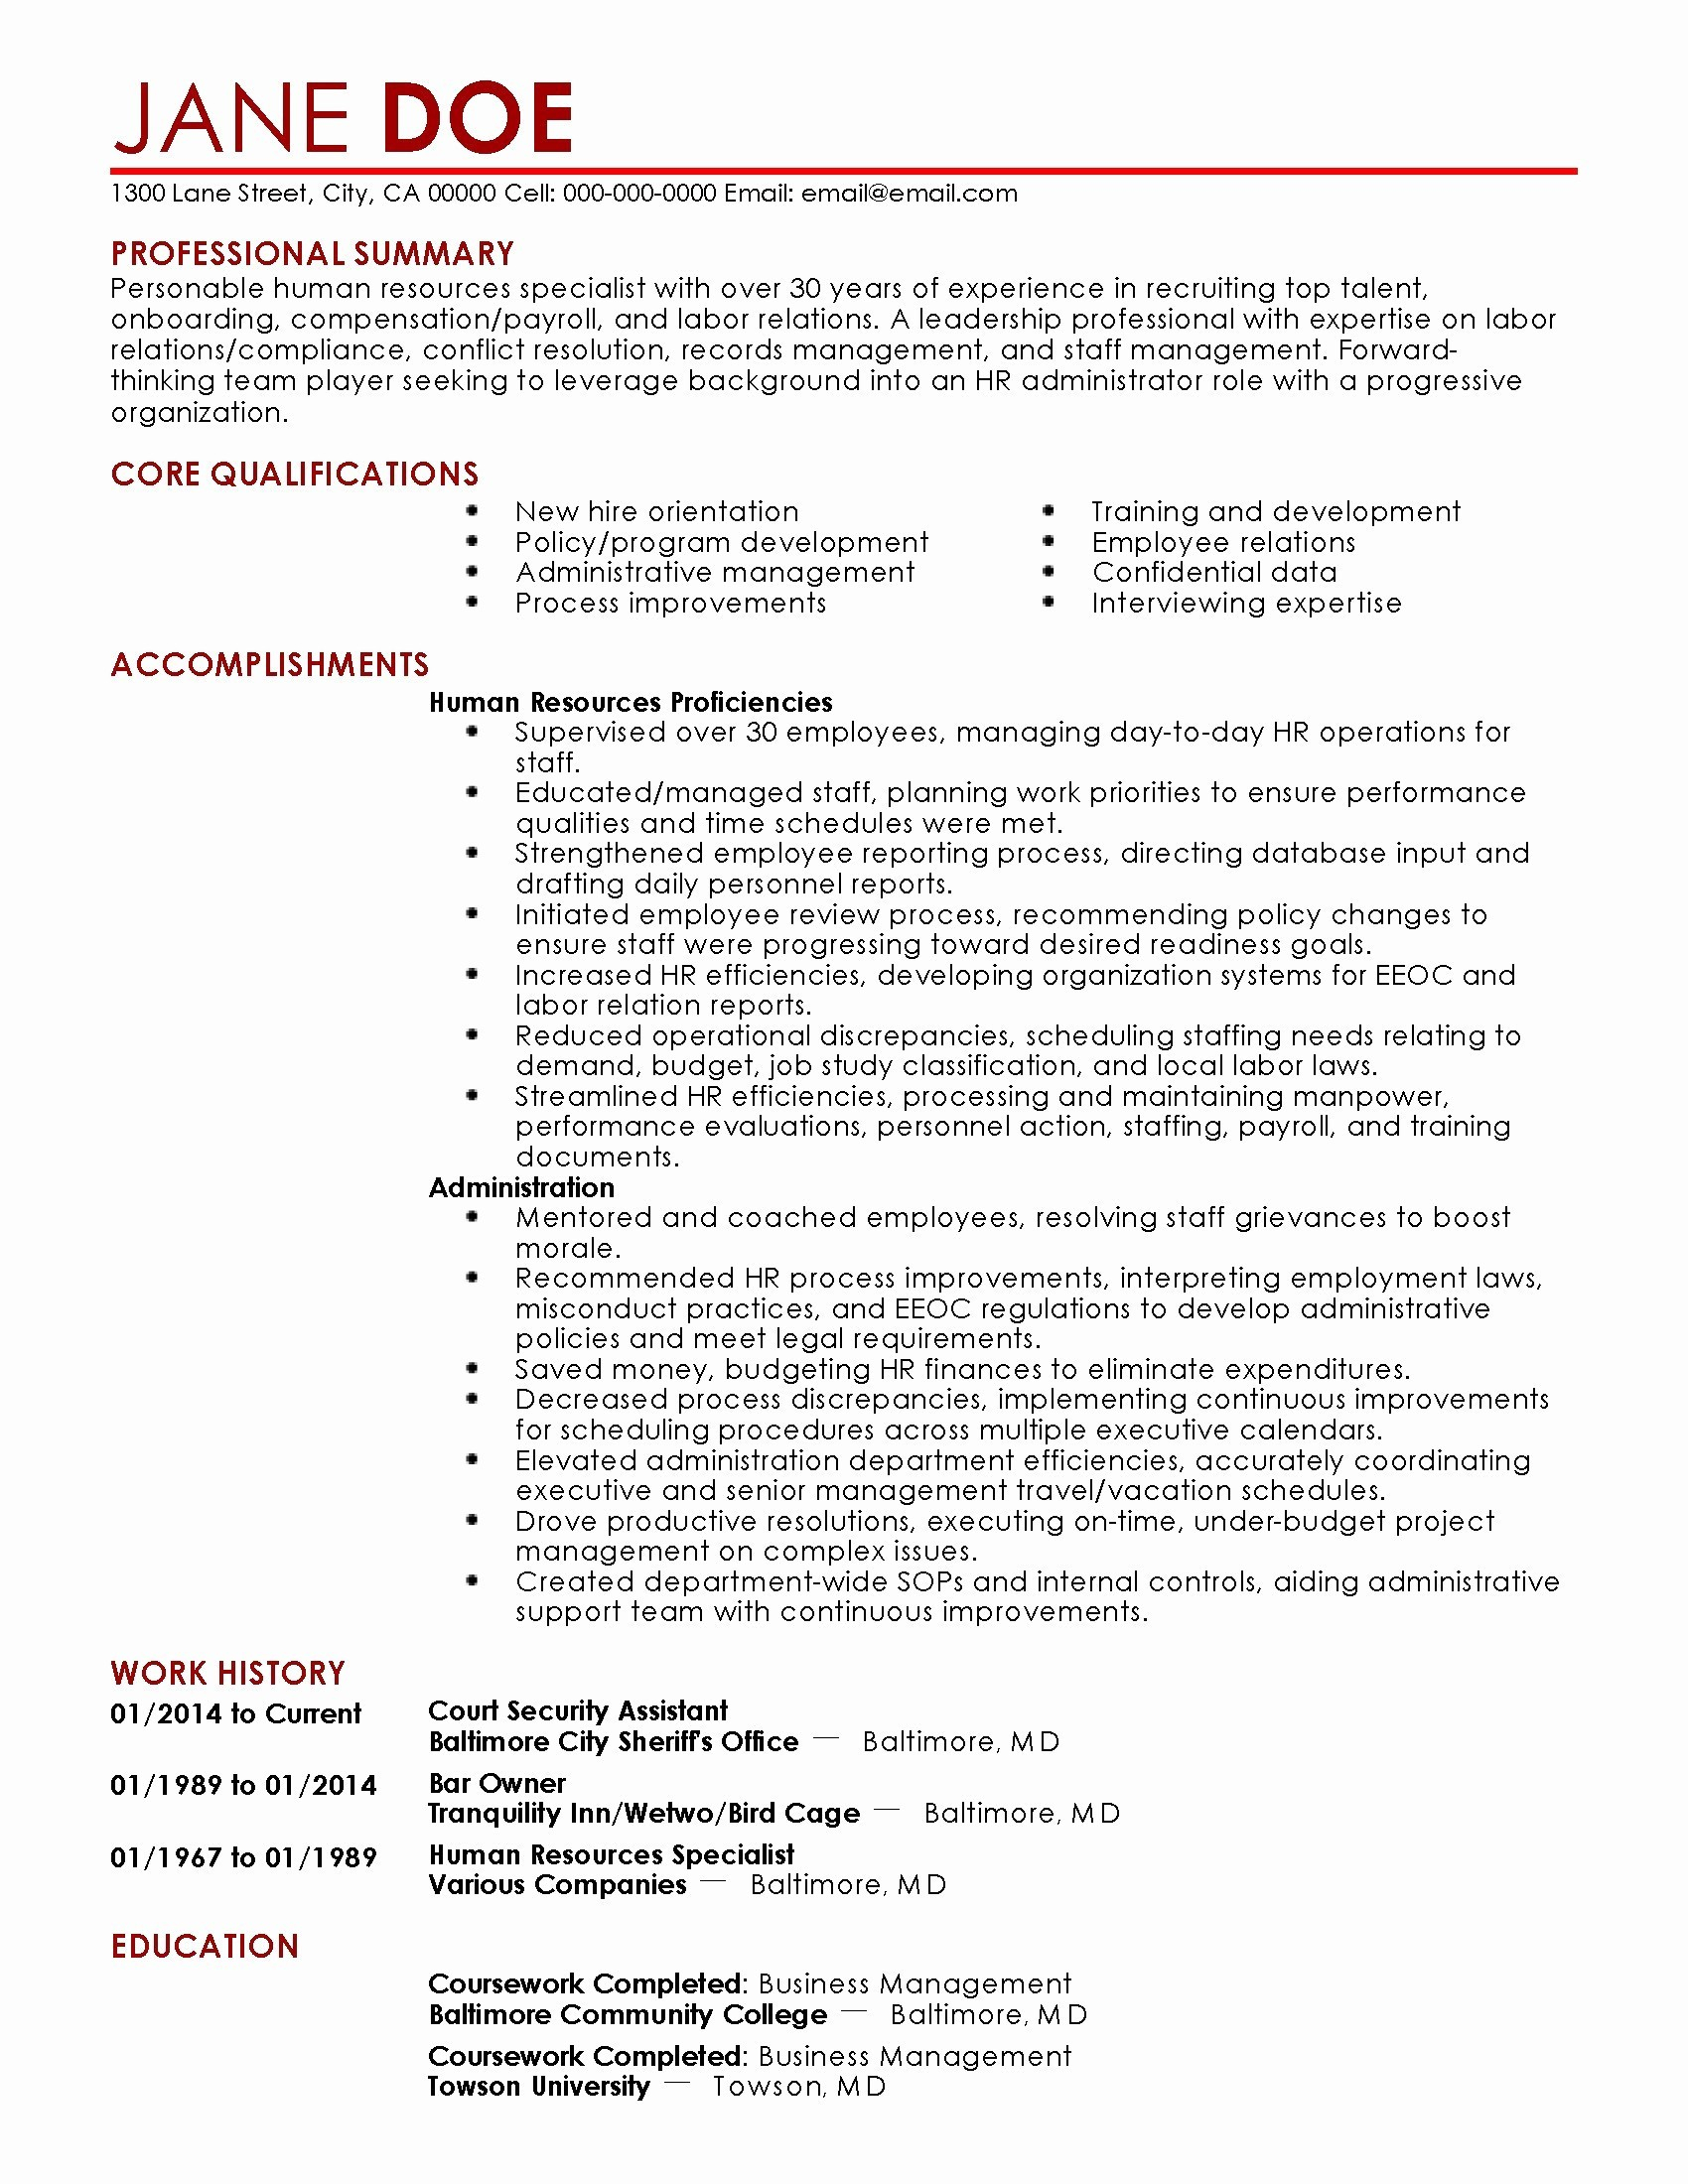 resume template medical assistant example-Medical assistant resume template lovely medical assistant resumes new medical resumes 0d bizmancan 13-i